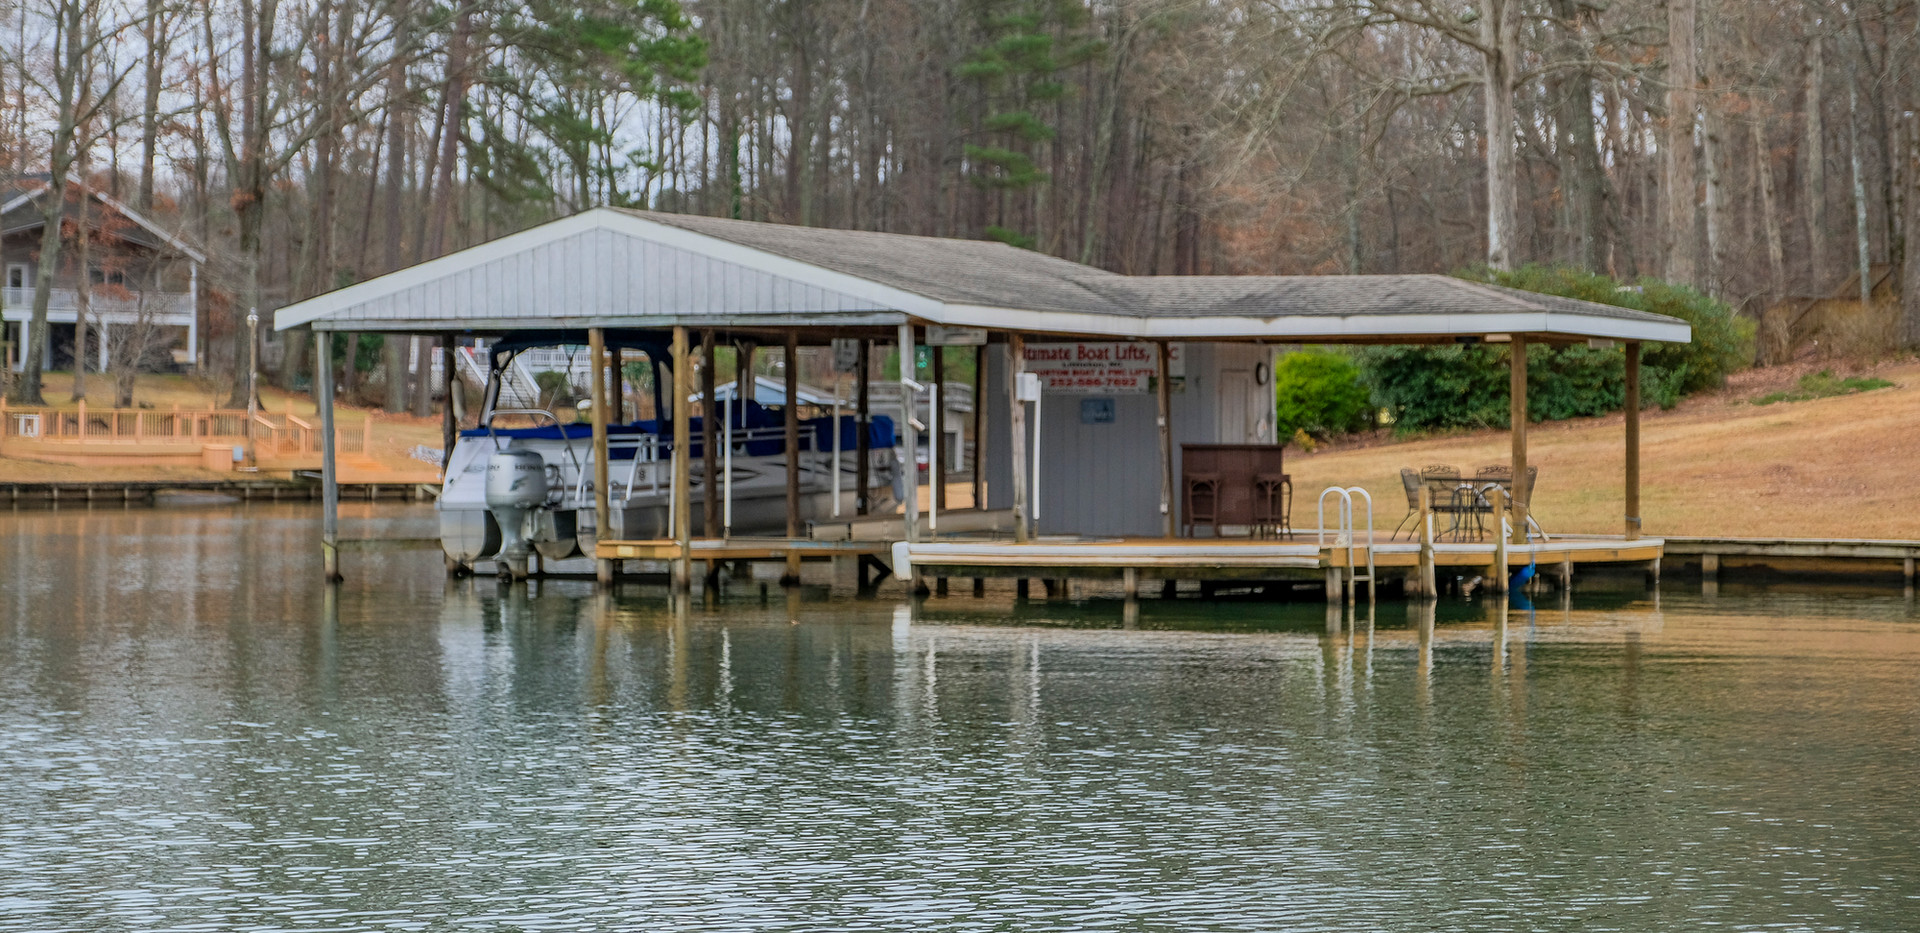 Ultimate Boat Lifts-51.jpg